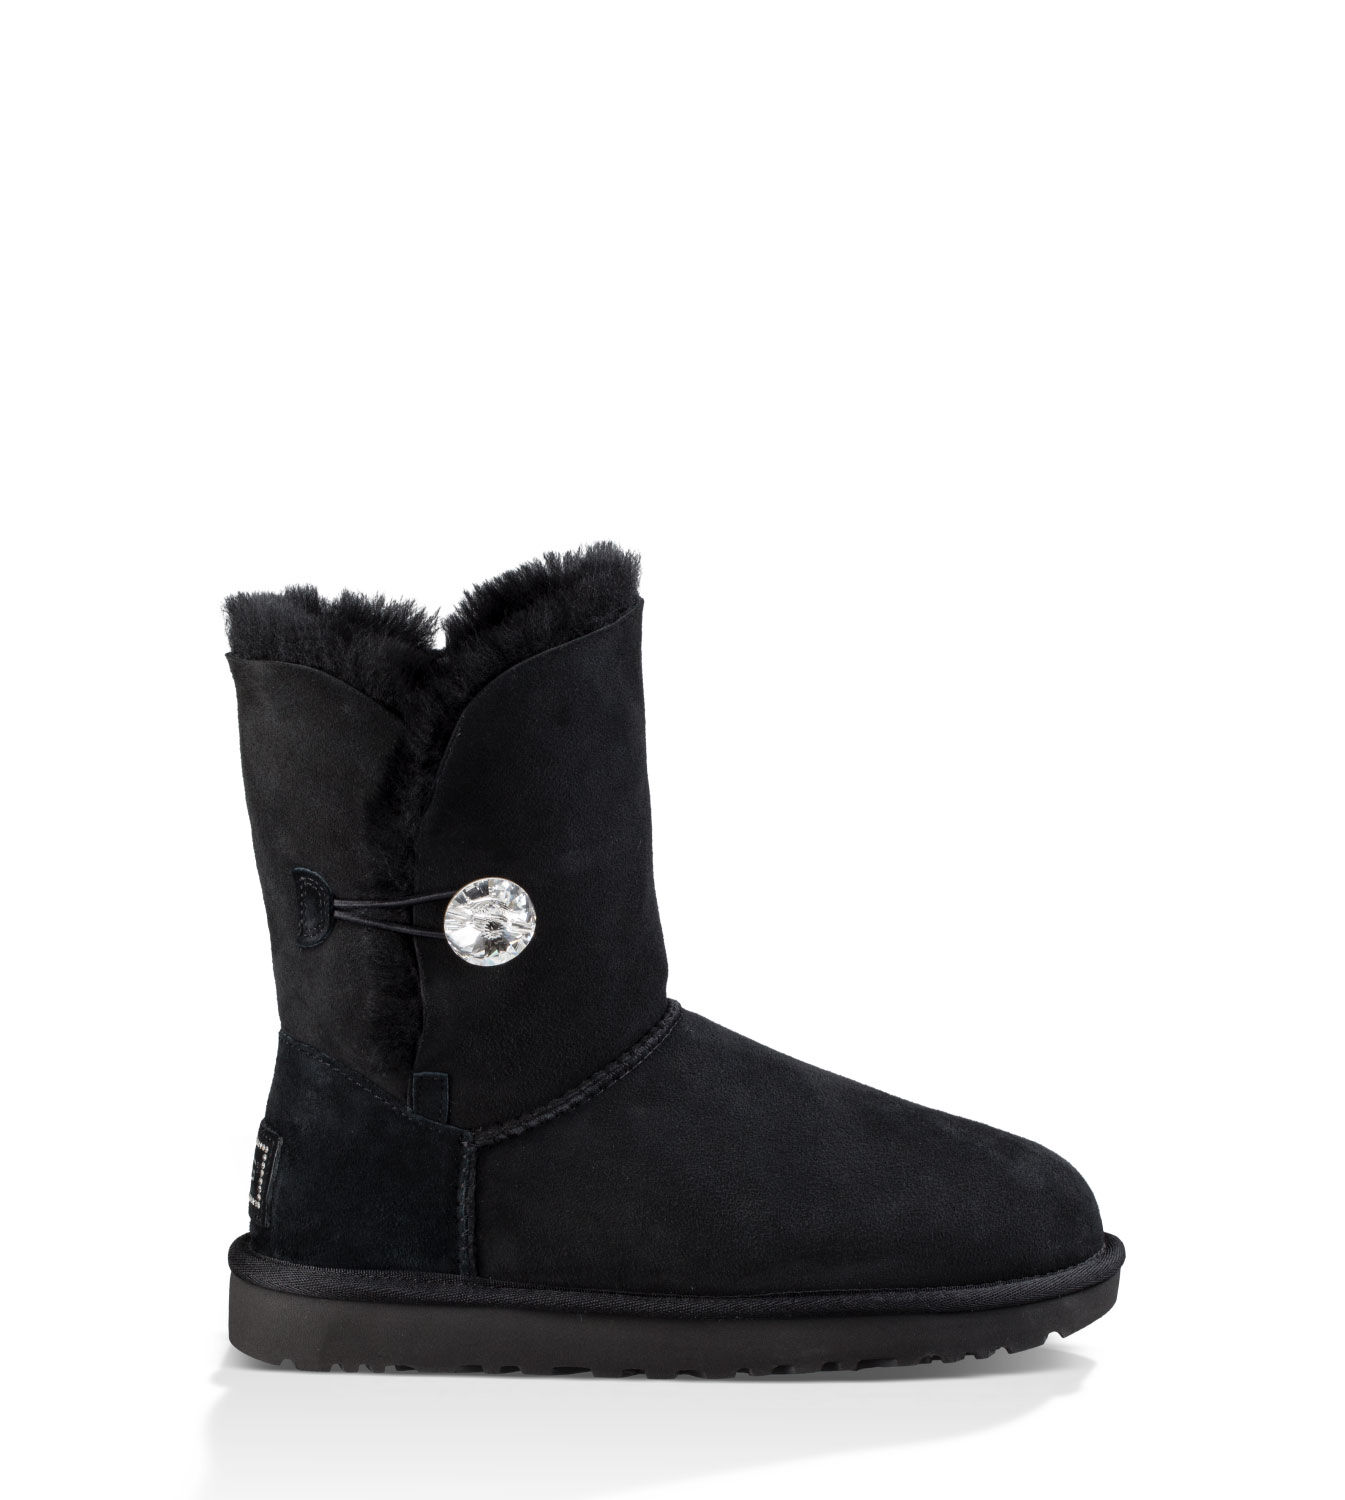 Ugg with boots fur on top exclusive photo